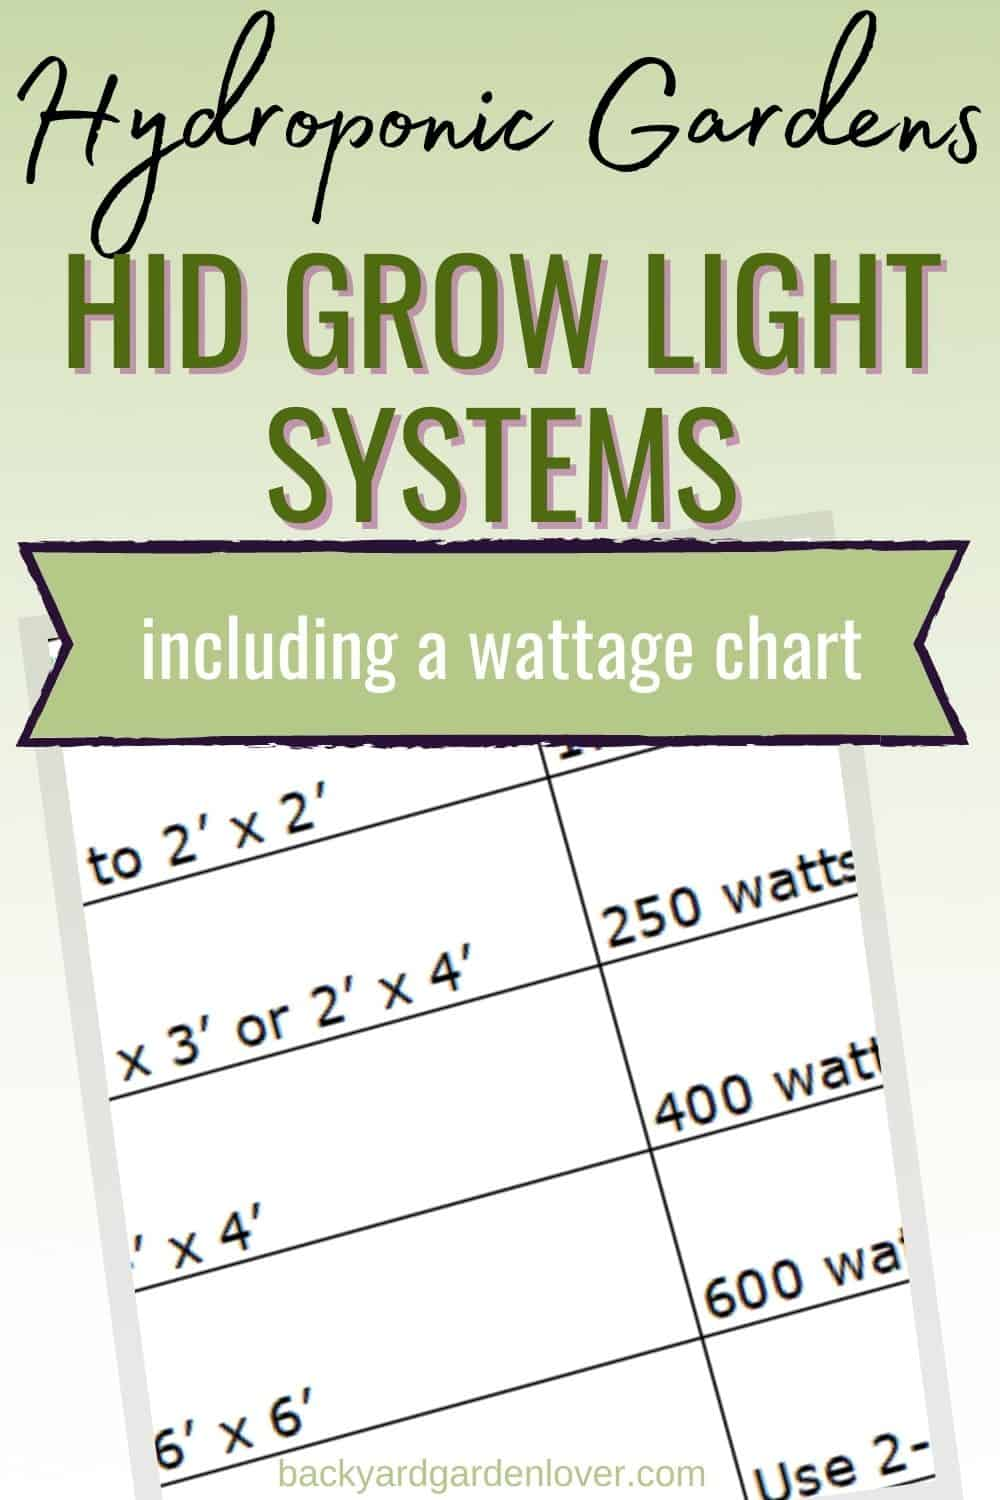 HID grow light systems for hydroponic gardens - Pinterest image